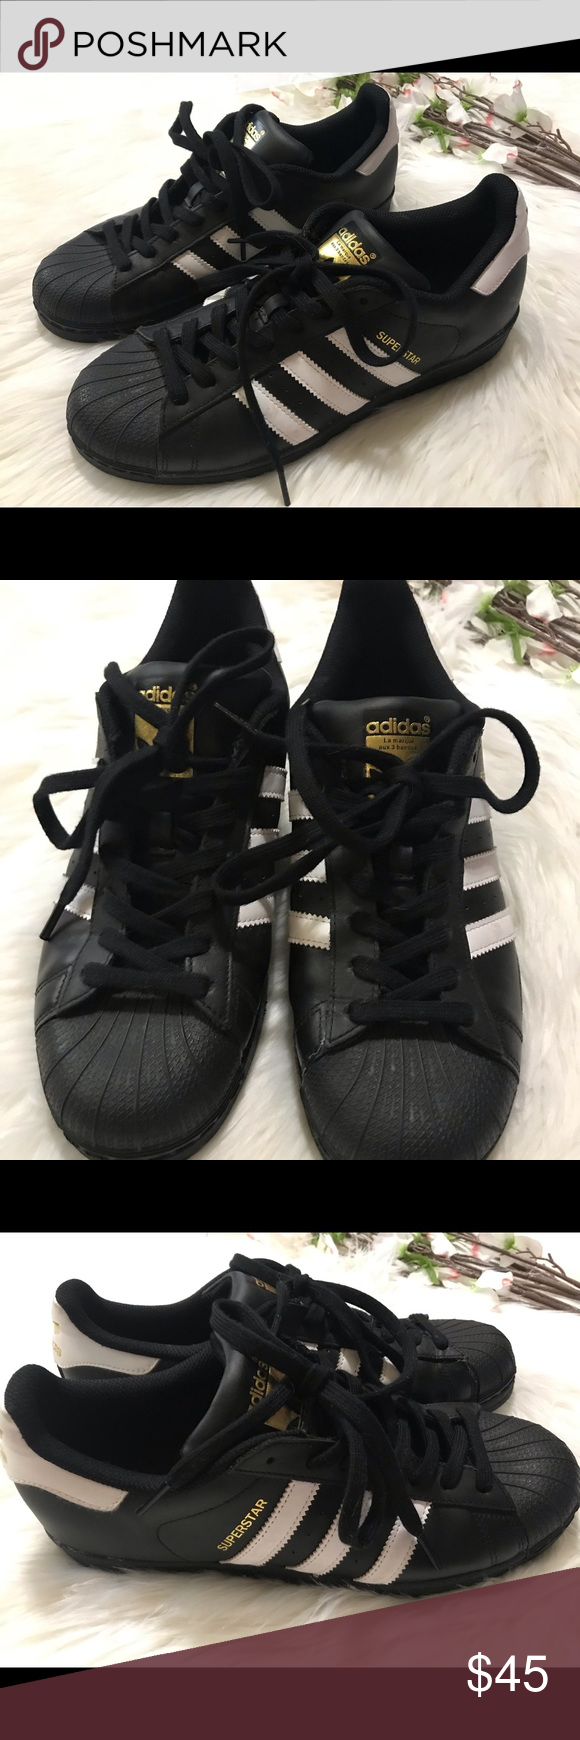 Adidas Superstar Black White Gold Sneakers Gold sneakers